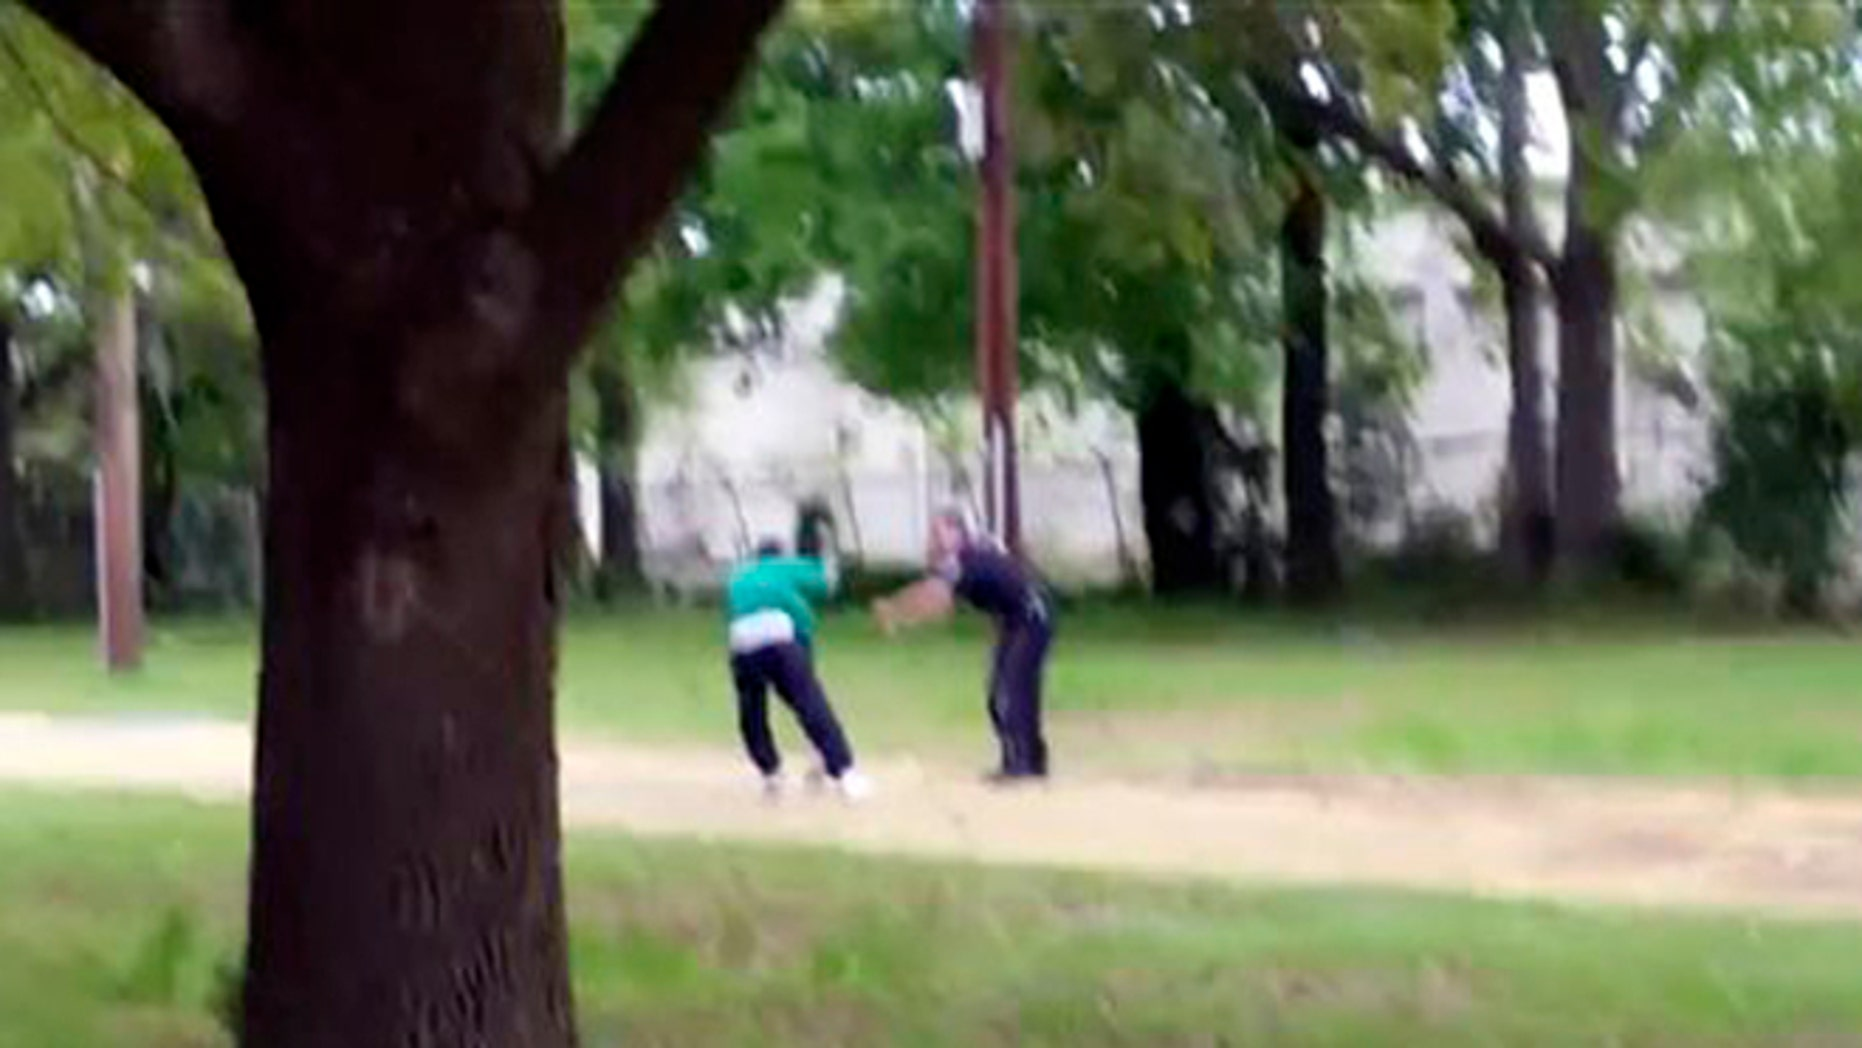 In this image from video, Walter Scott struggles with police officer Michael Thomas Slager in Charleston, S.C., on April 4, 2015. Moments later, the video shows Slager firing eight shots at Scott's back. Scott's death was shown around the world and he became a symbol of the ongoing debate over police shootings of unarmed African-Americans. (Feidin Santana via AP Images)